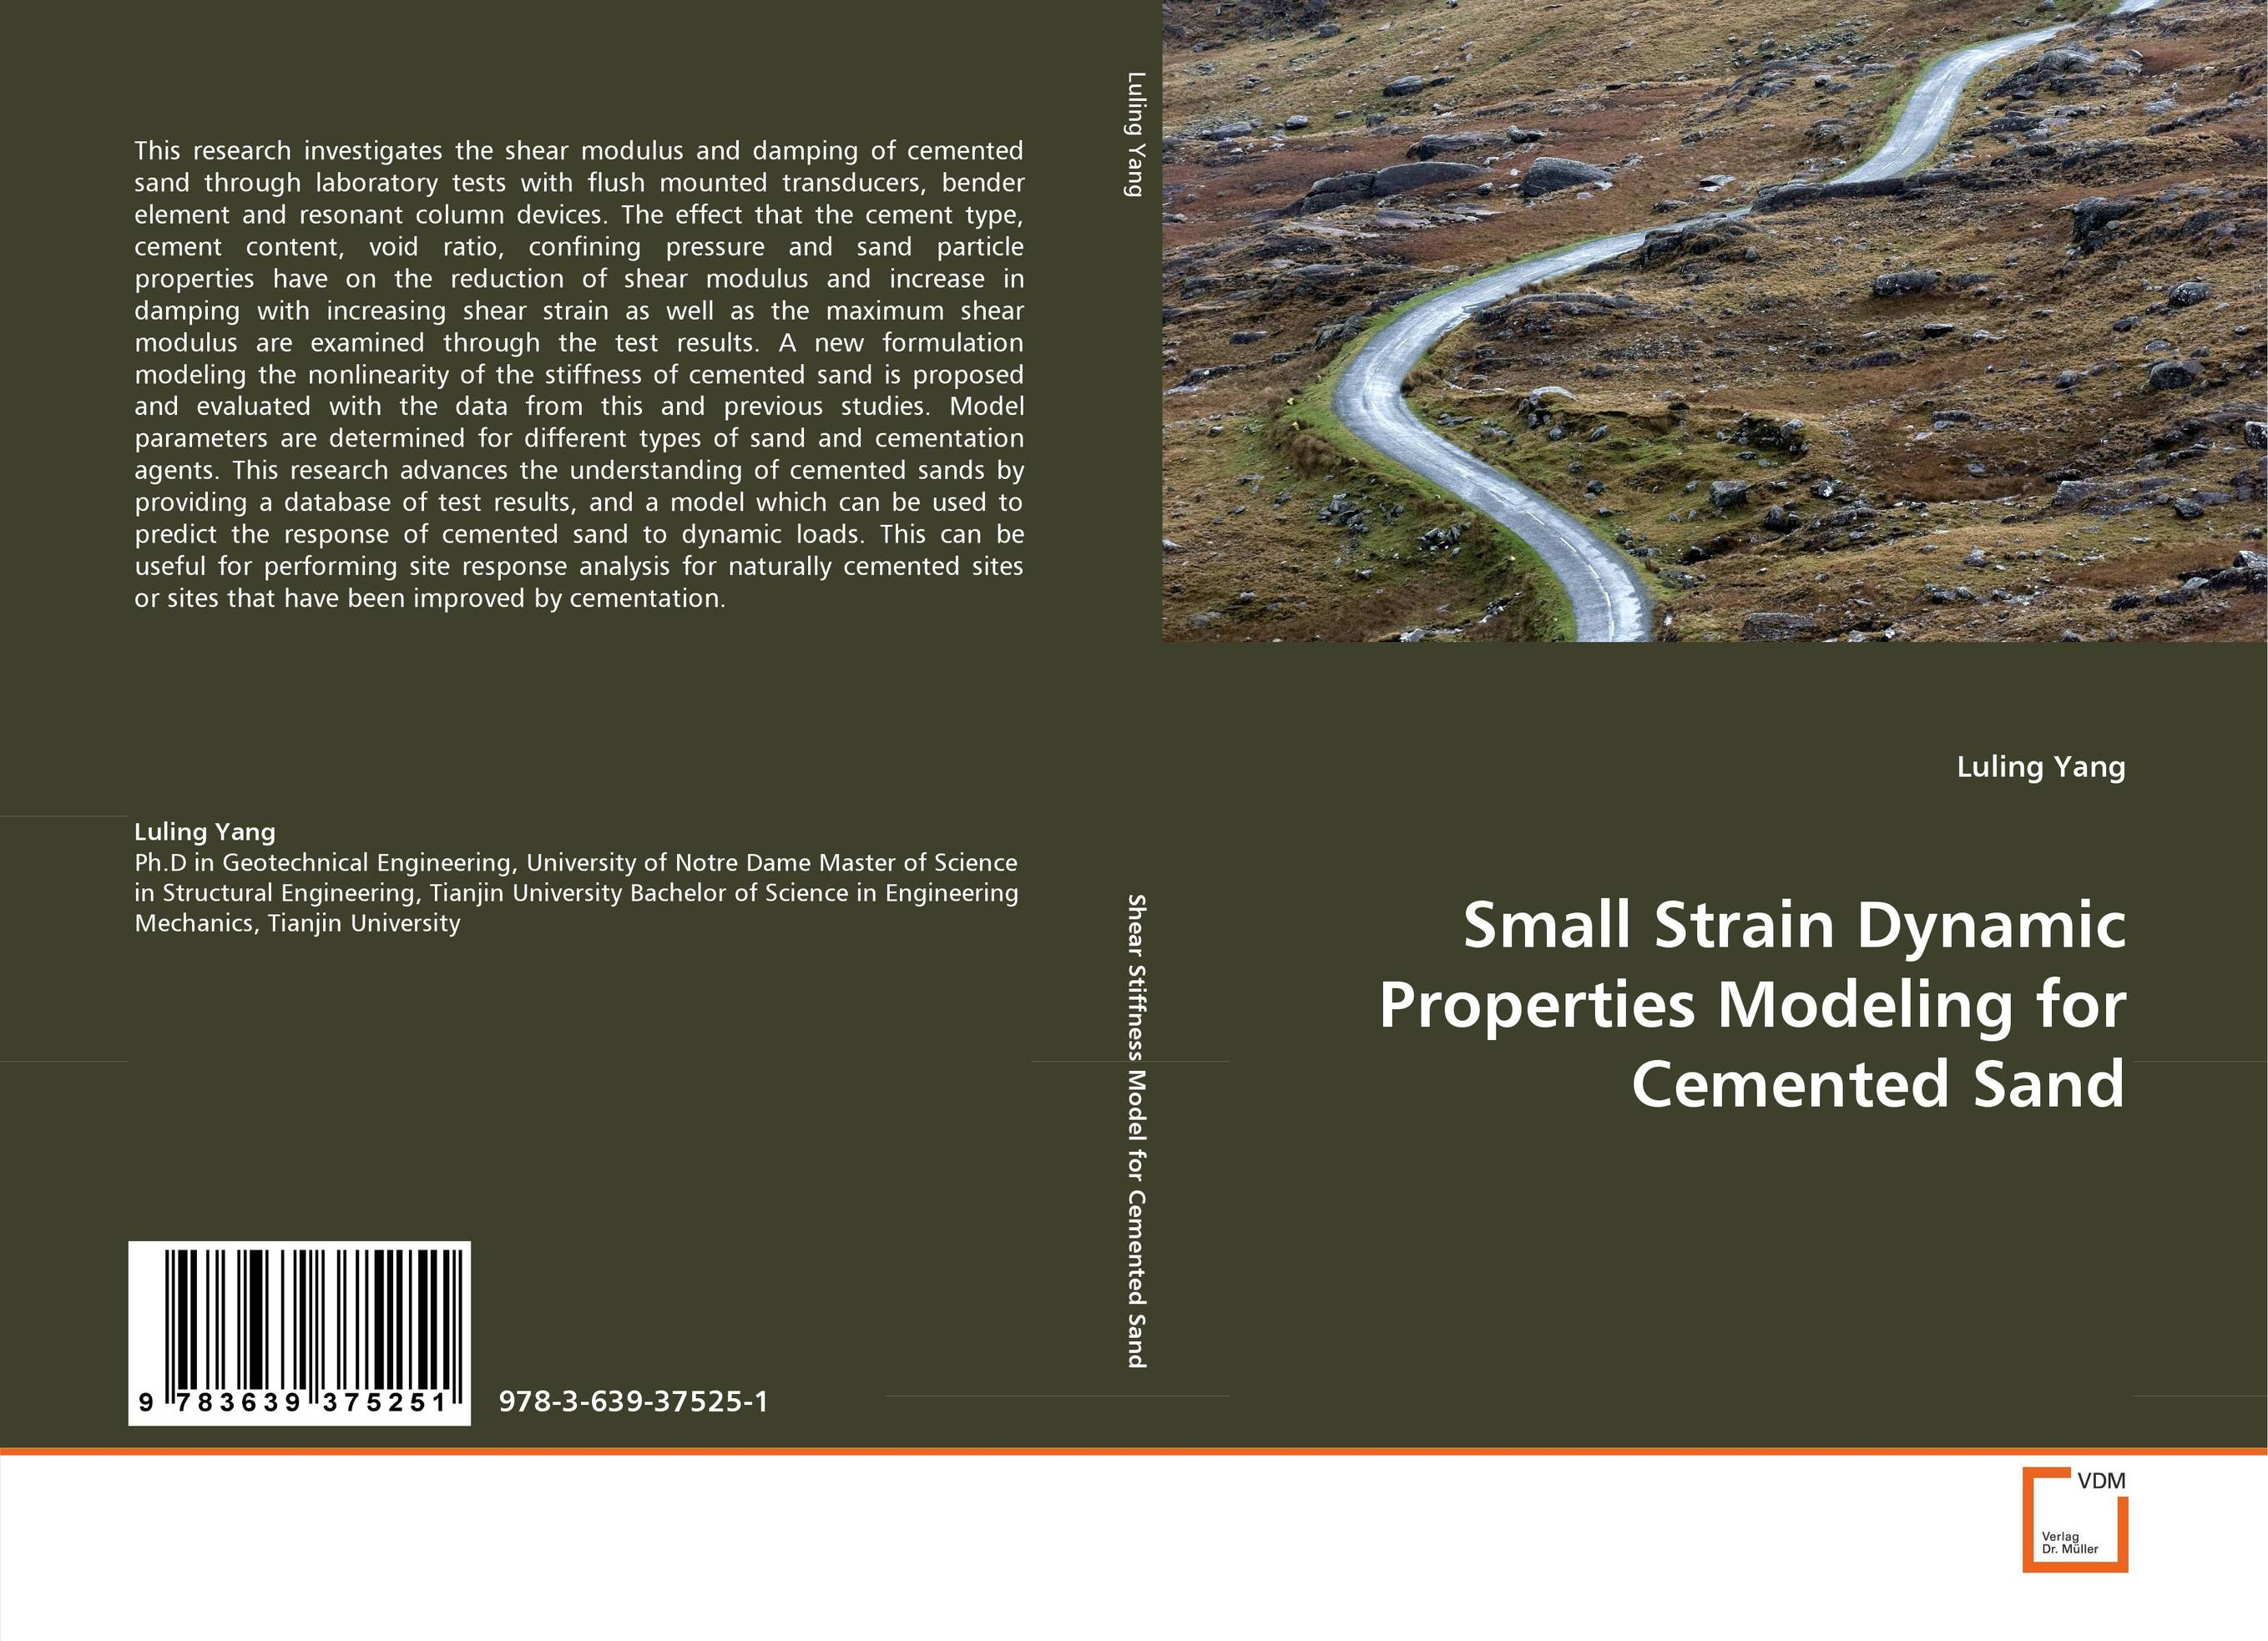 Small Strain Dynamic Properties Modeling for Cemented Sand small strain dynamic properties modeling for cemented sand